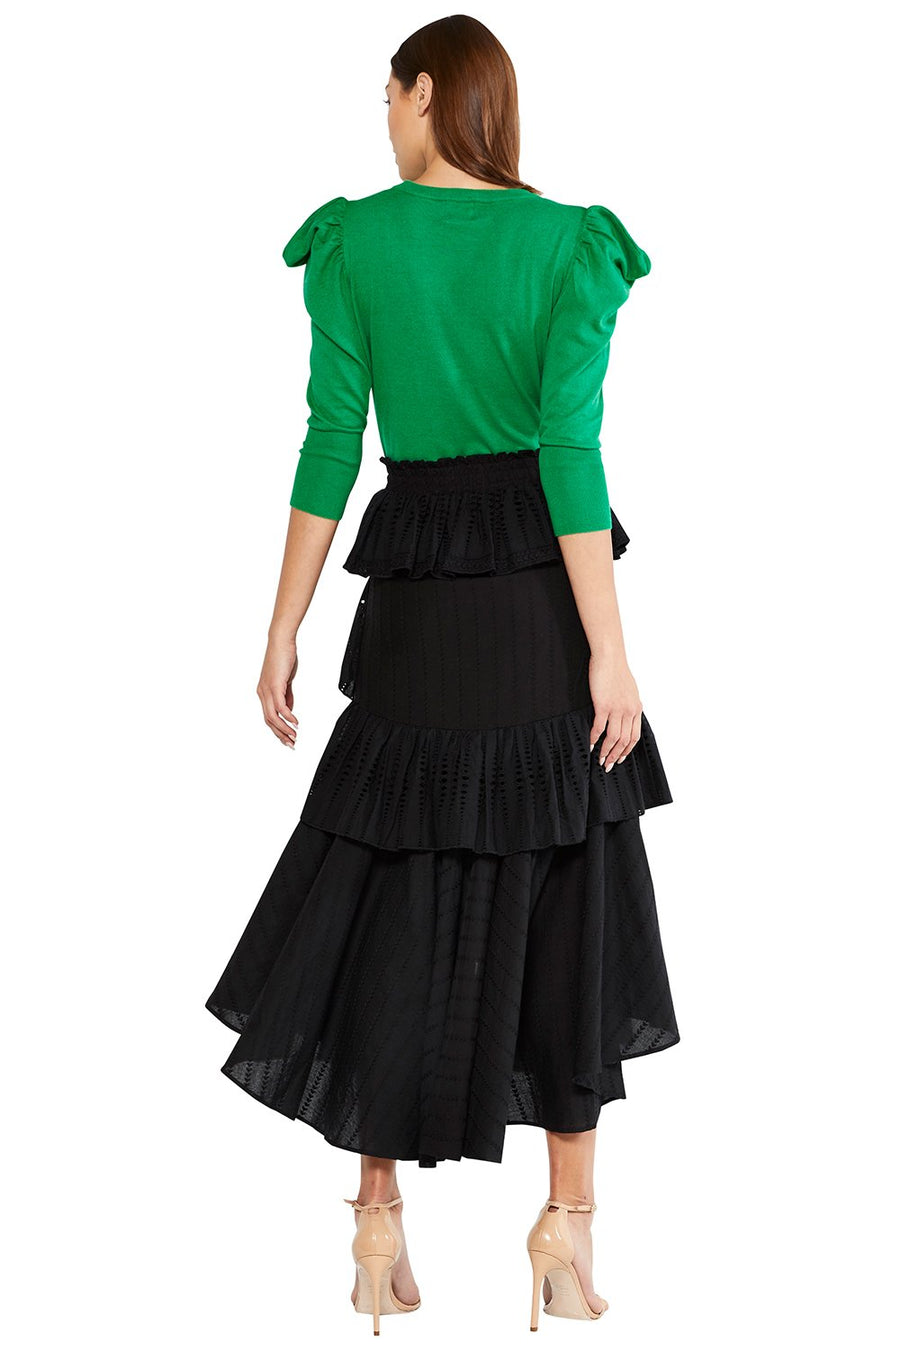 Misa Guthrie Sweater in Green